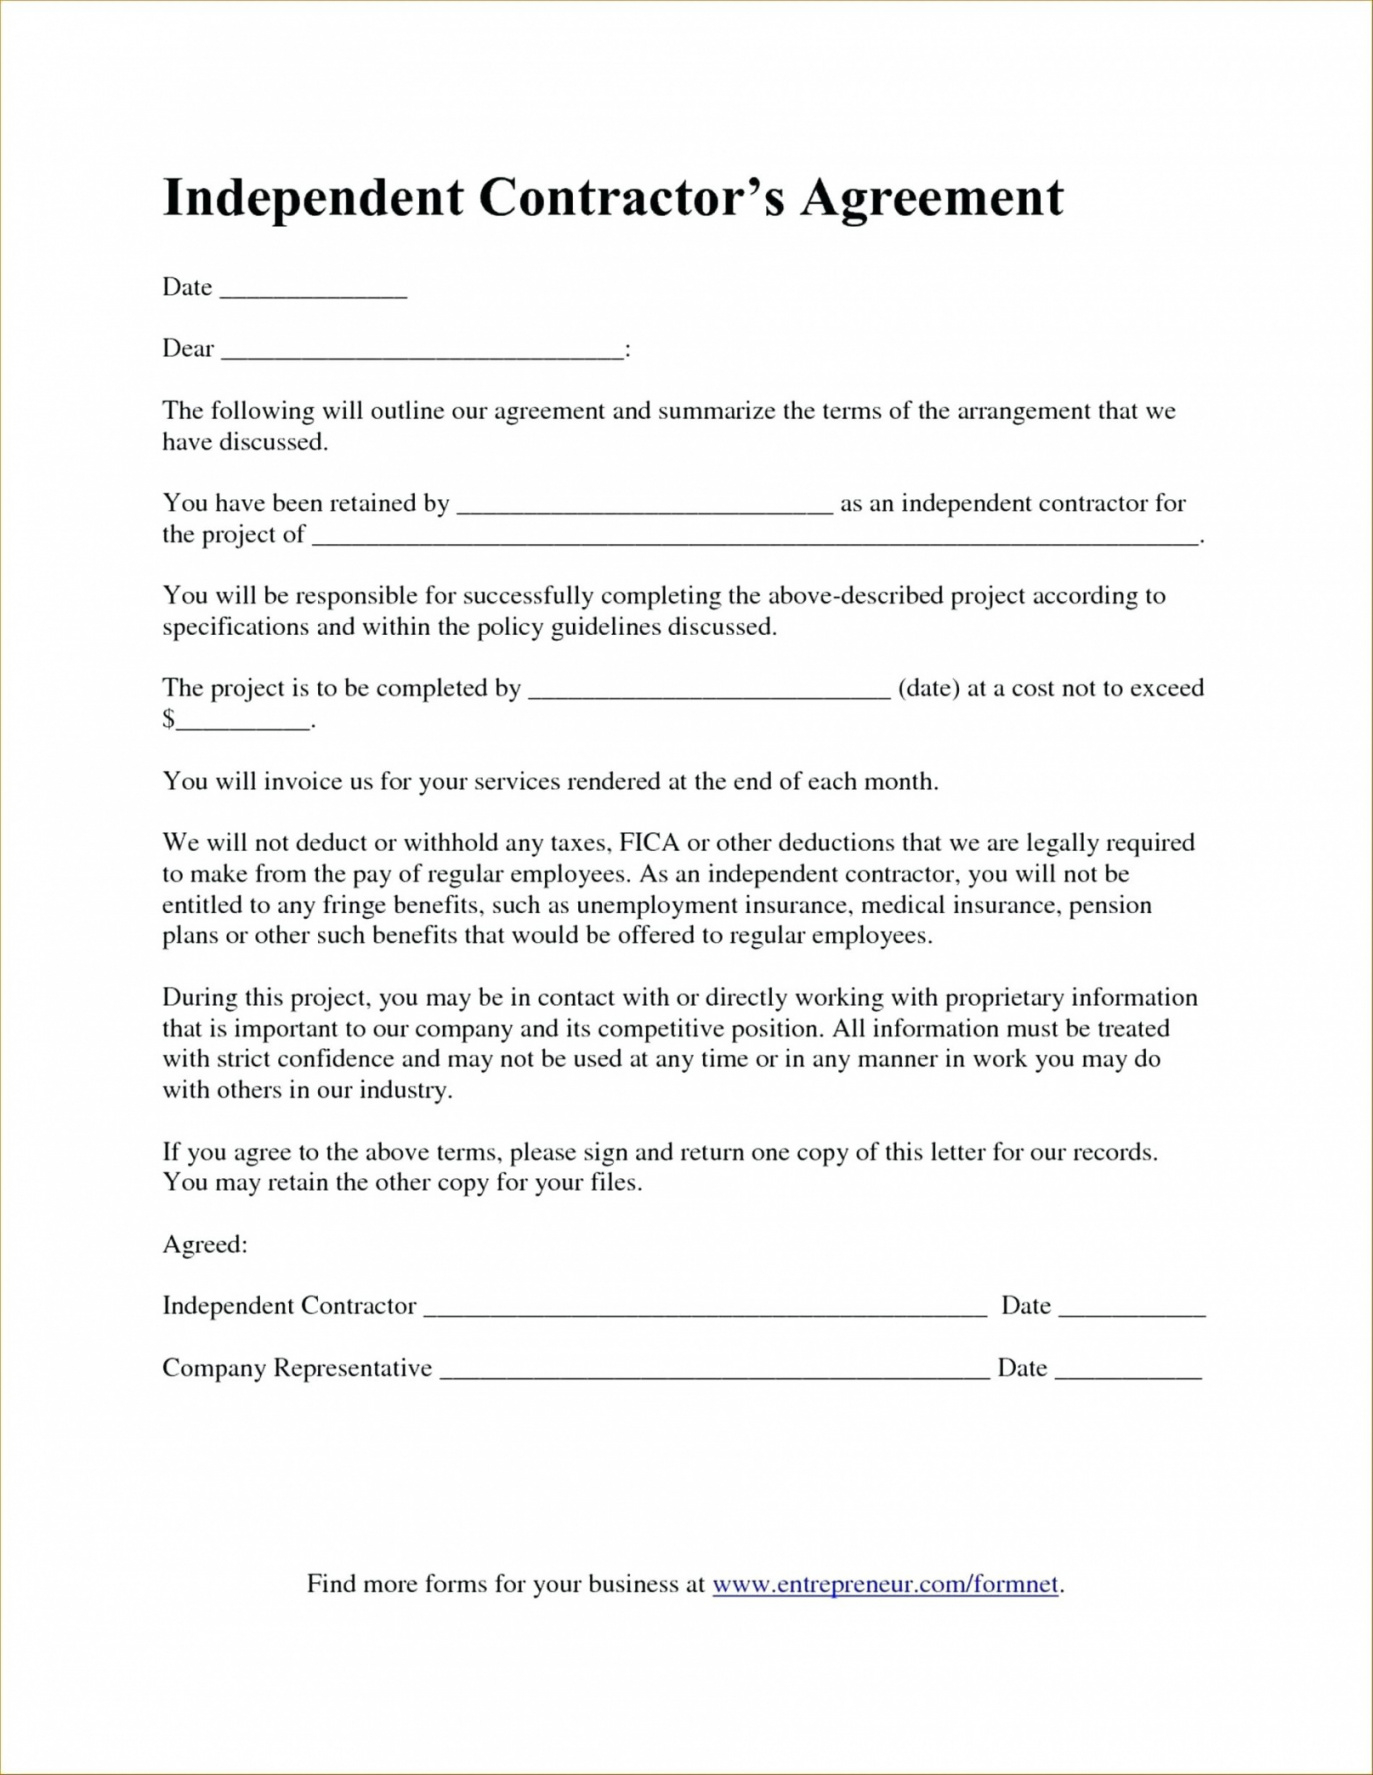 This Is The Independent Contractor Agreement Florida Contract Form Pdf Under Law Truck Driver Contract Agreement Sample